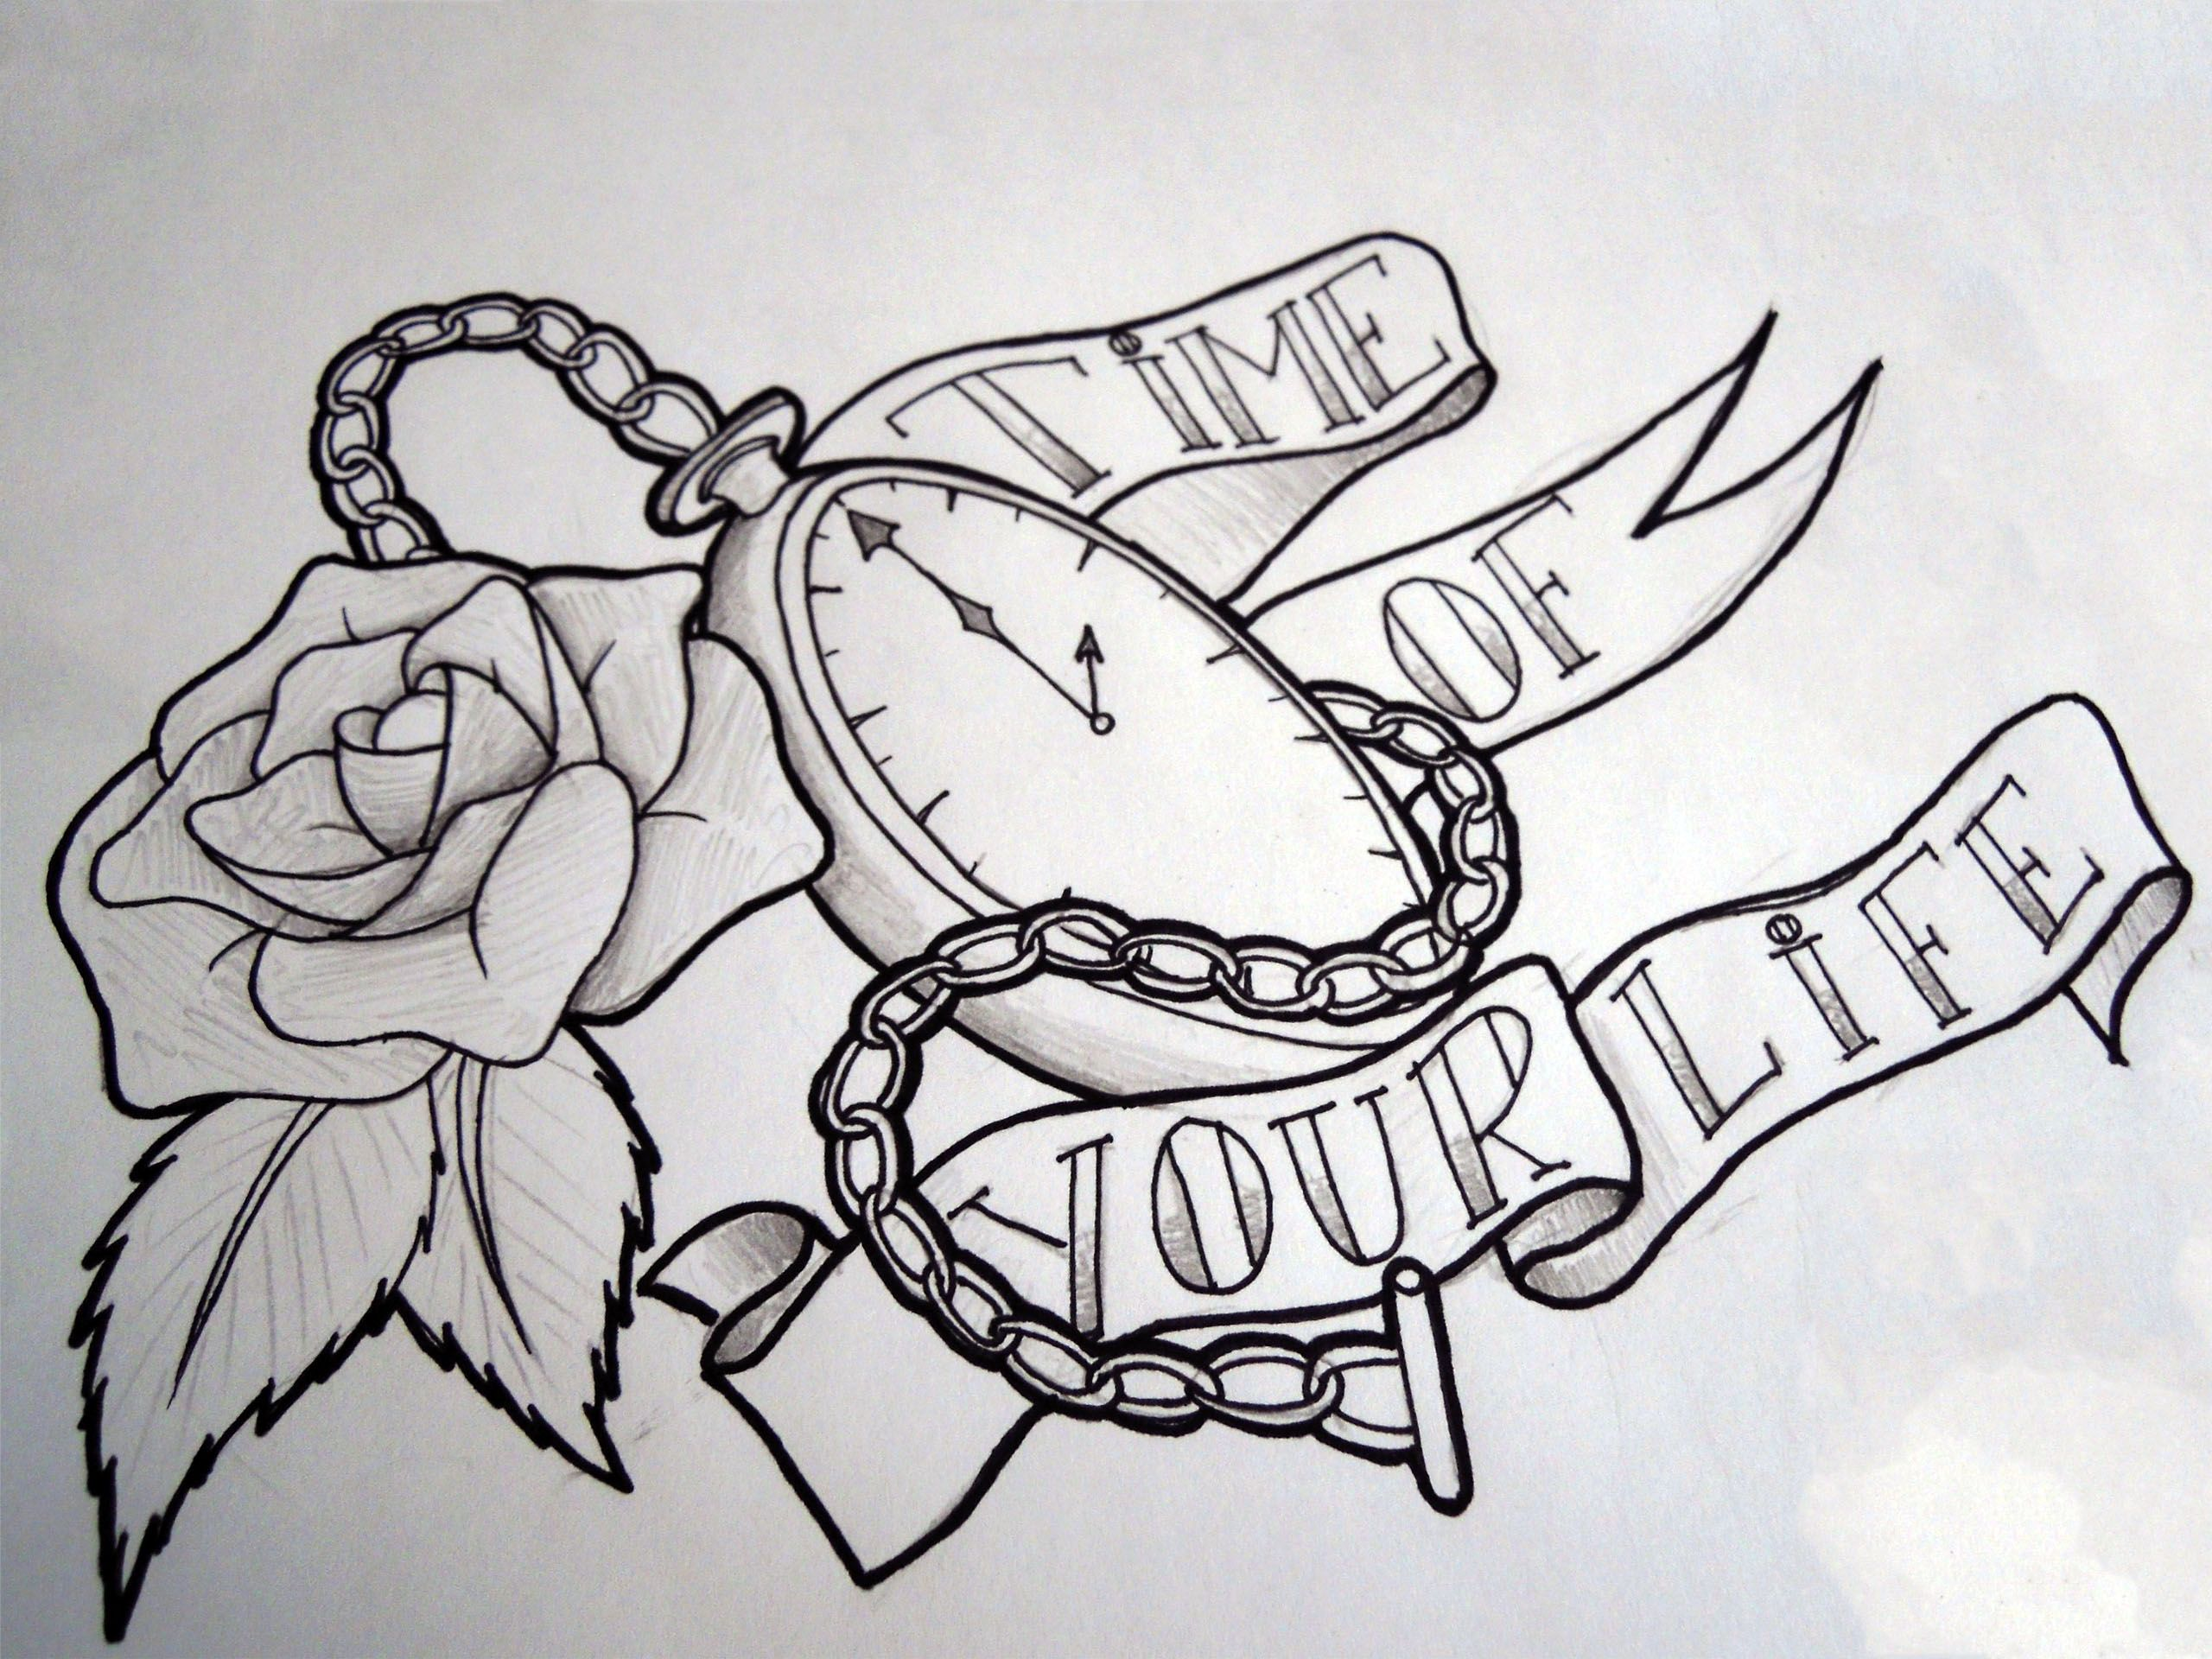 Pocket watch tattoo sketch  Pocket-Watch-Tattoo with scroll | Tats | Pinterest | Pocket watch ...